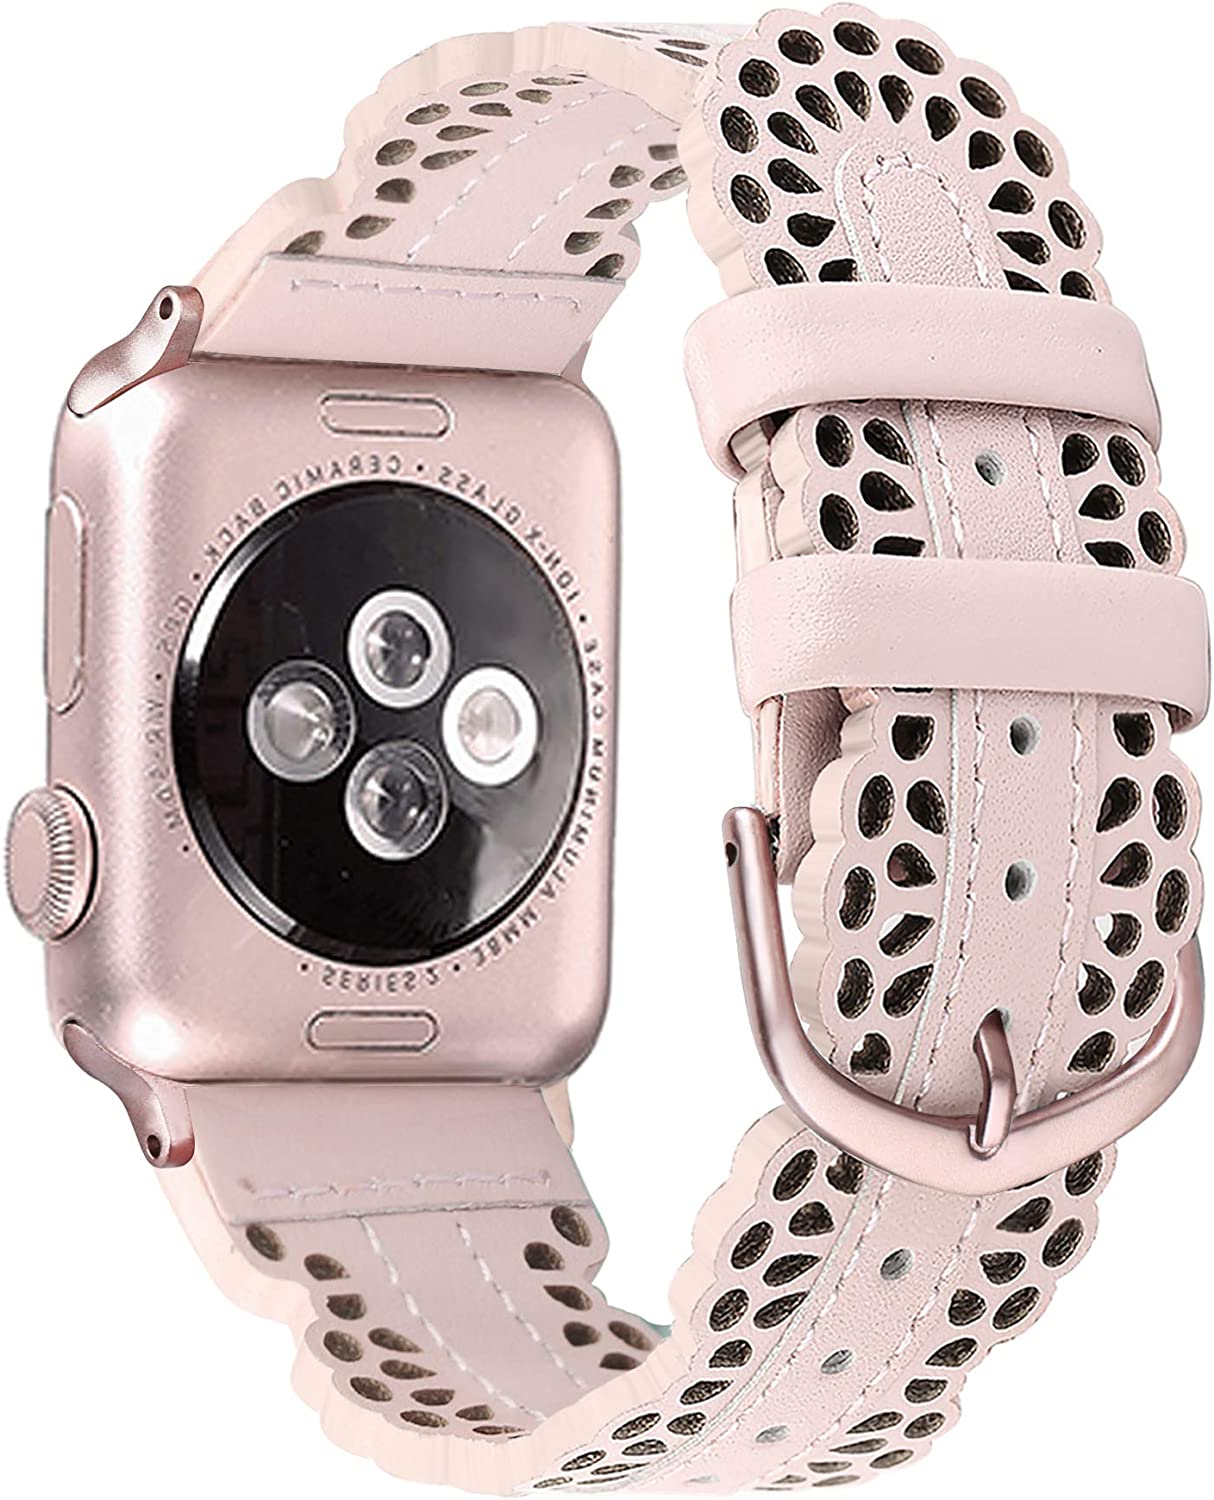 Secbolt Leather Bands Compatible with Apple Watch Band 38mm 40mm 42mm 44mm iWatch SE Series 6 5 4 3 2 1, Breathable Chic Lace Leather Strap for Women